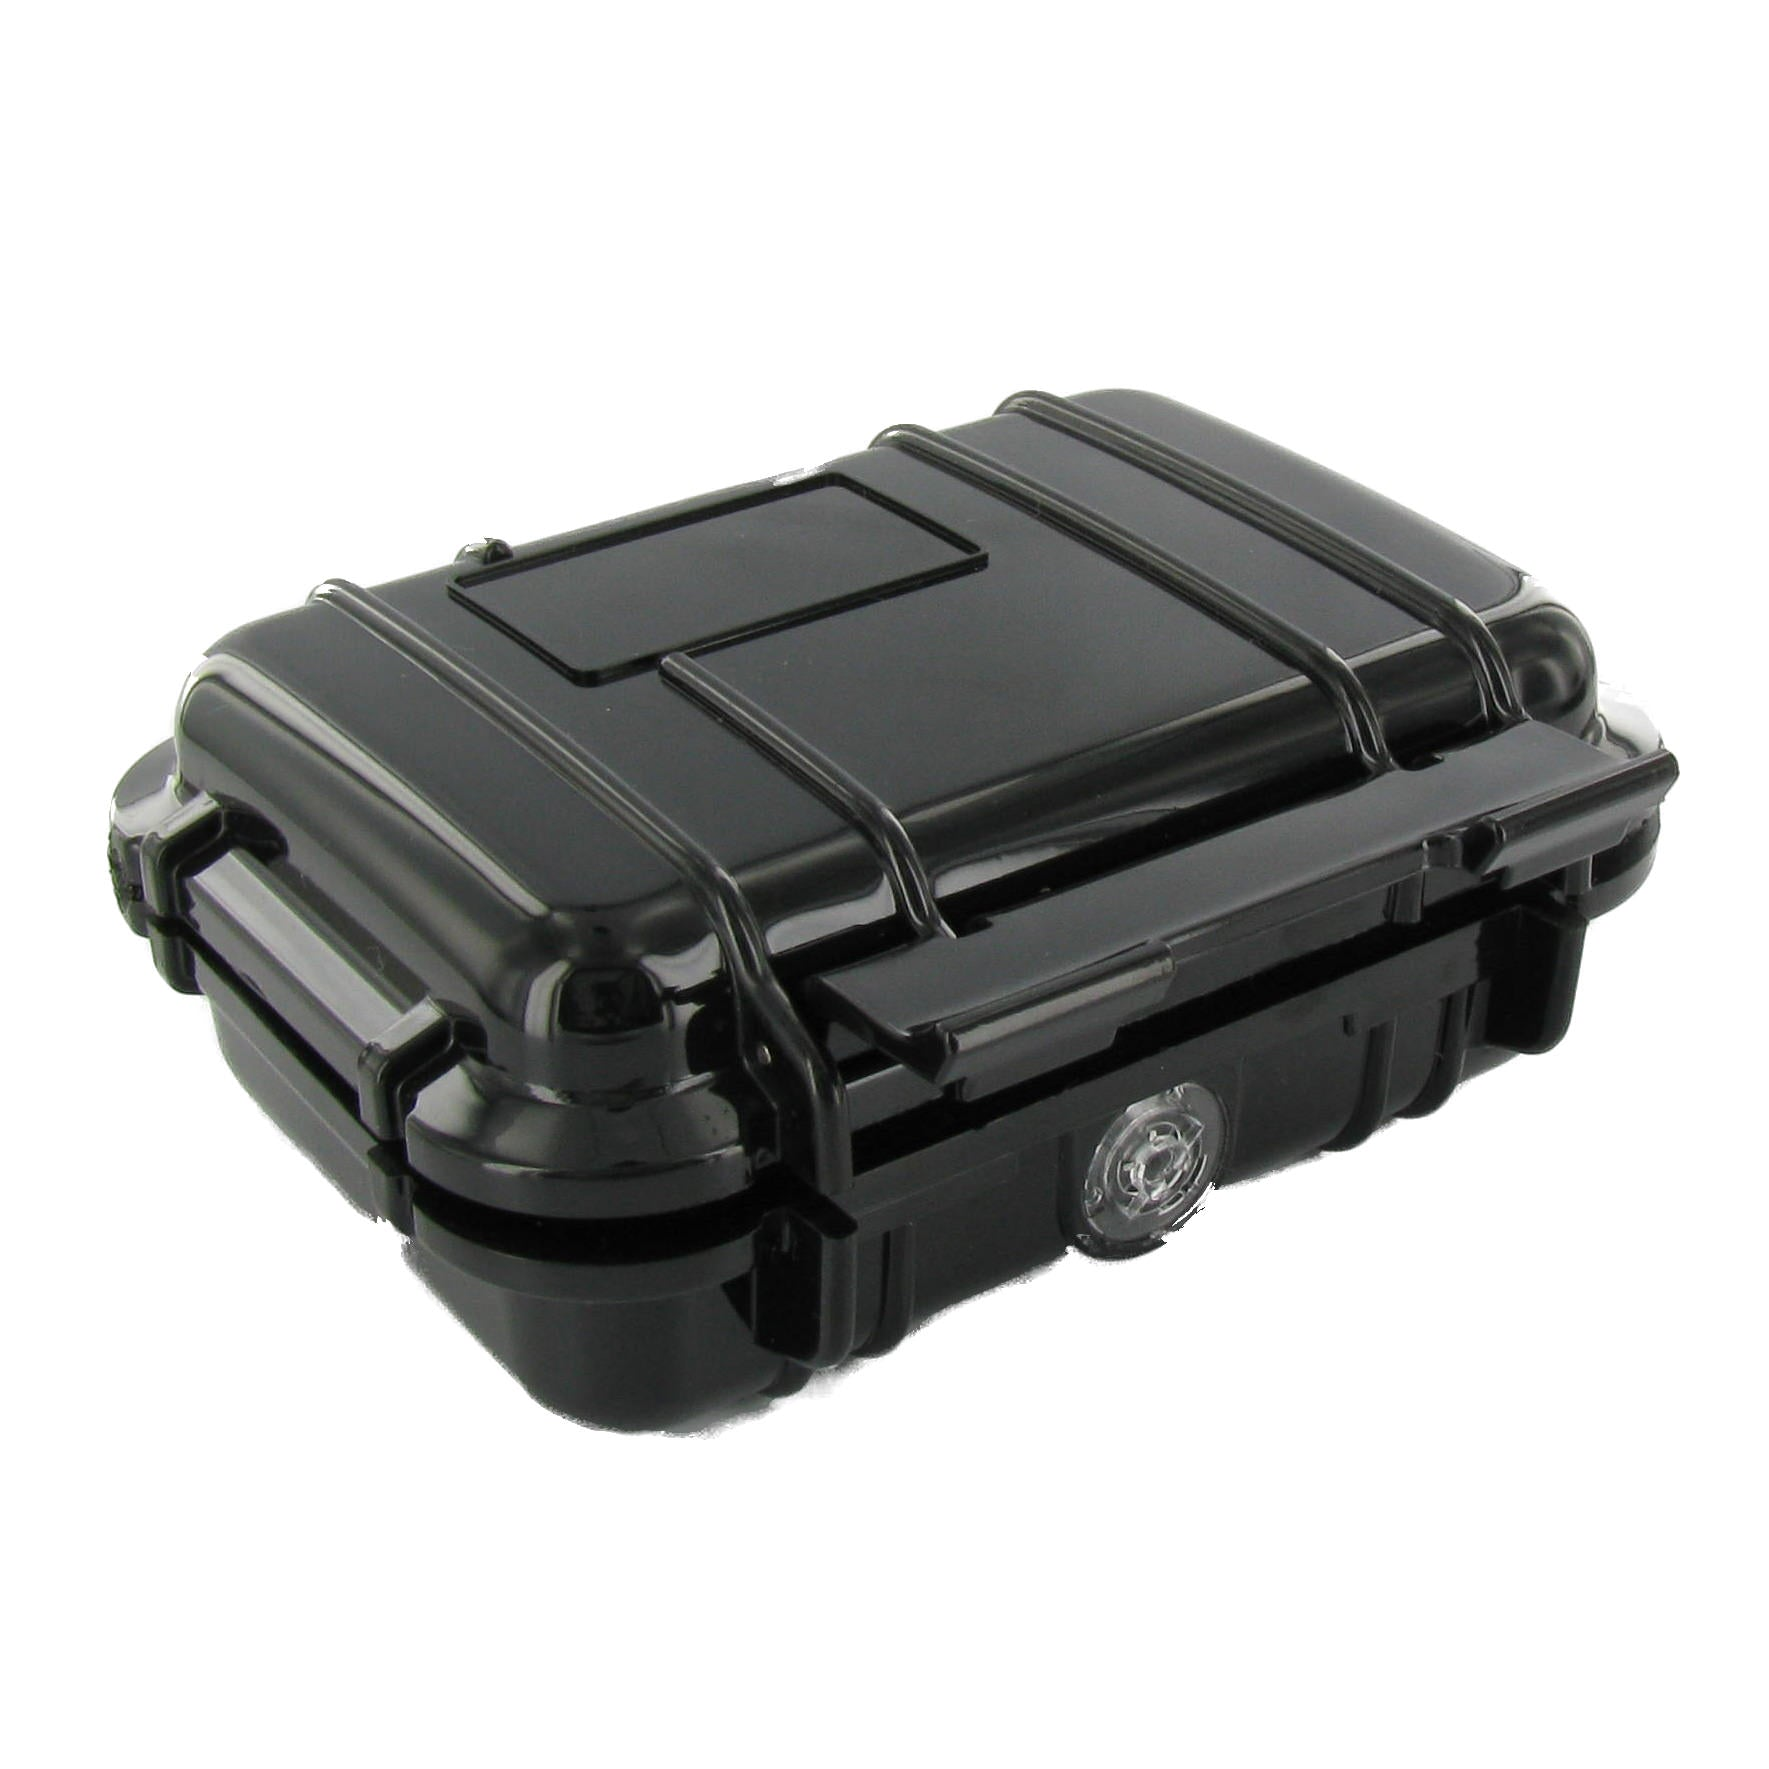 CMS Hard Shell Carrying Case